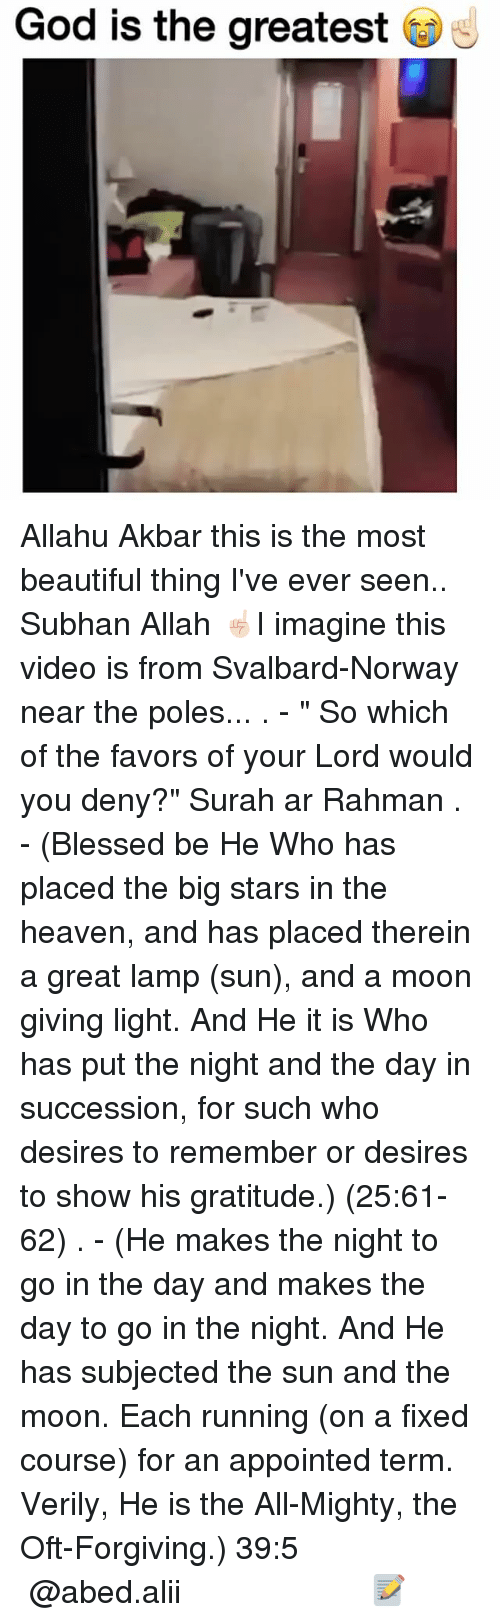 """the most beautiful thing ive ever: God is the greatest Allahu Akbar this is the most beautiful thing I've ever seen.. Subhan Allah ☝🏻I imagine this video is from Svalbard-Norway near the poles... . - """" So which of the favors of your Lord would you deny?"""" Surah ar Rahman . - (Blessed be He Who has placed the big stars in the heaven, and has placed therein a great lamp (sun), and a moon giving light. And He it is Who has put the night and the day in succession, for such who desires to remember or desires to show his gratitude.) (25:61-62) . - (He makes the night to go in the day and makes the day to go in the night. And He has subjected the sun and the moon. Each running (on a fixed course) for an appointed term. Verily, He is the All-Mighty, the Oft-Forgiving.) ﴿39:5﴾ ▃▃▃▃▃▃▃▃▃▃▃▃▃▃▃▃▃▃▃▃ @abed.alii 📝"""